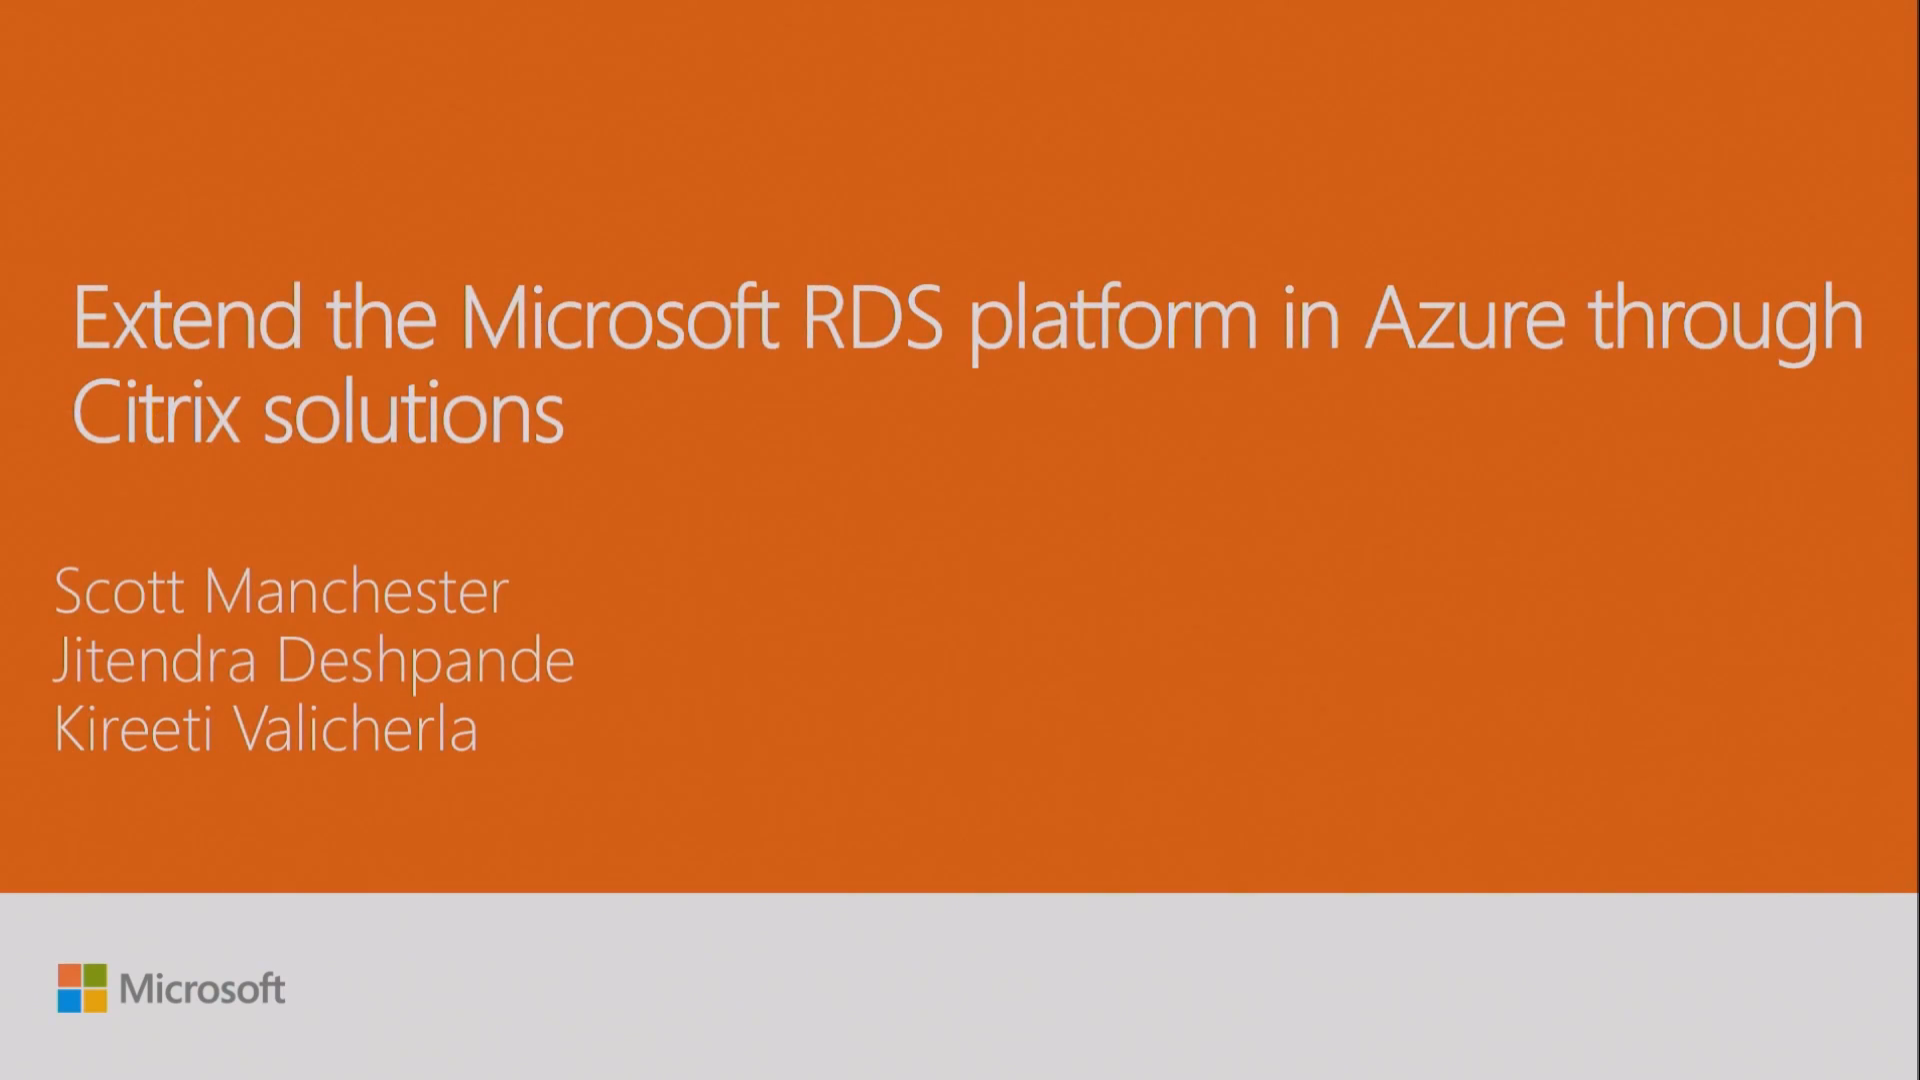 Ignite 2016 – Extend the Microsoft RDS platform in Azure through Citrix solutions